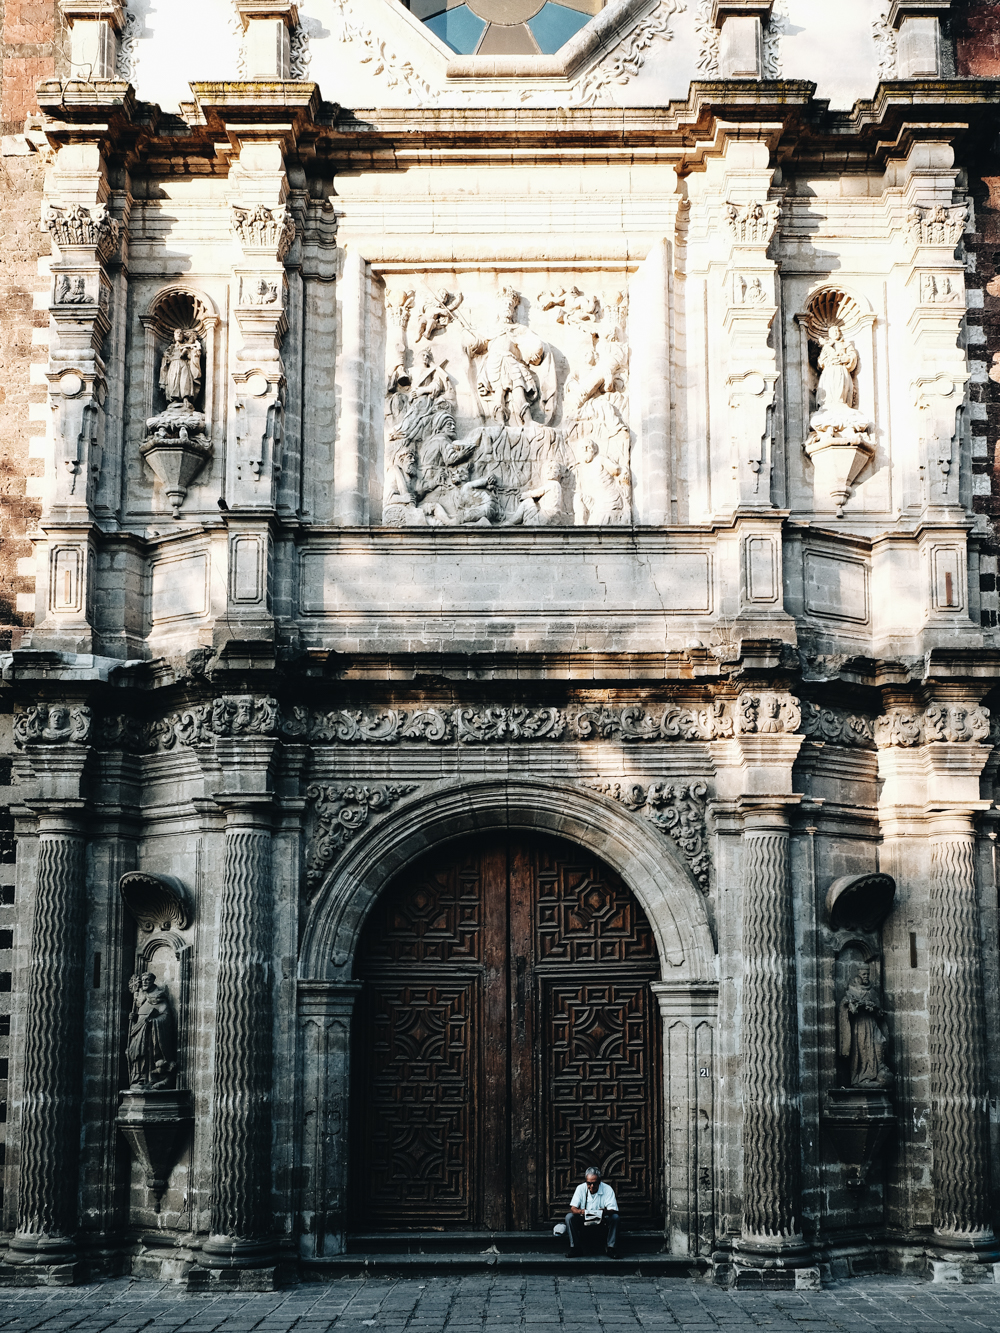 street_scene-Cookwilltravel-Mexico_City.jpg